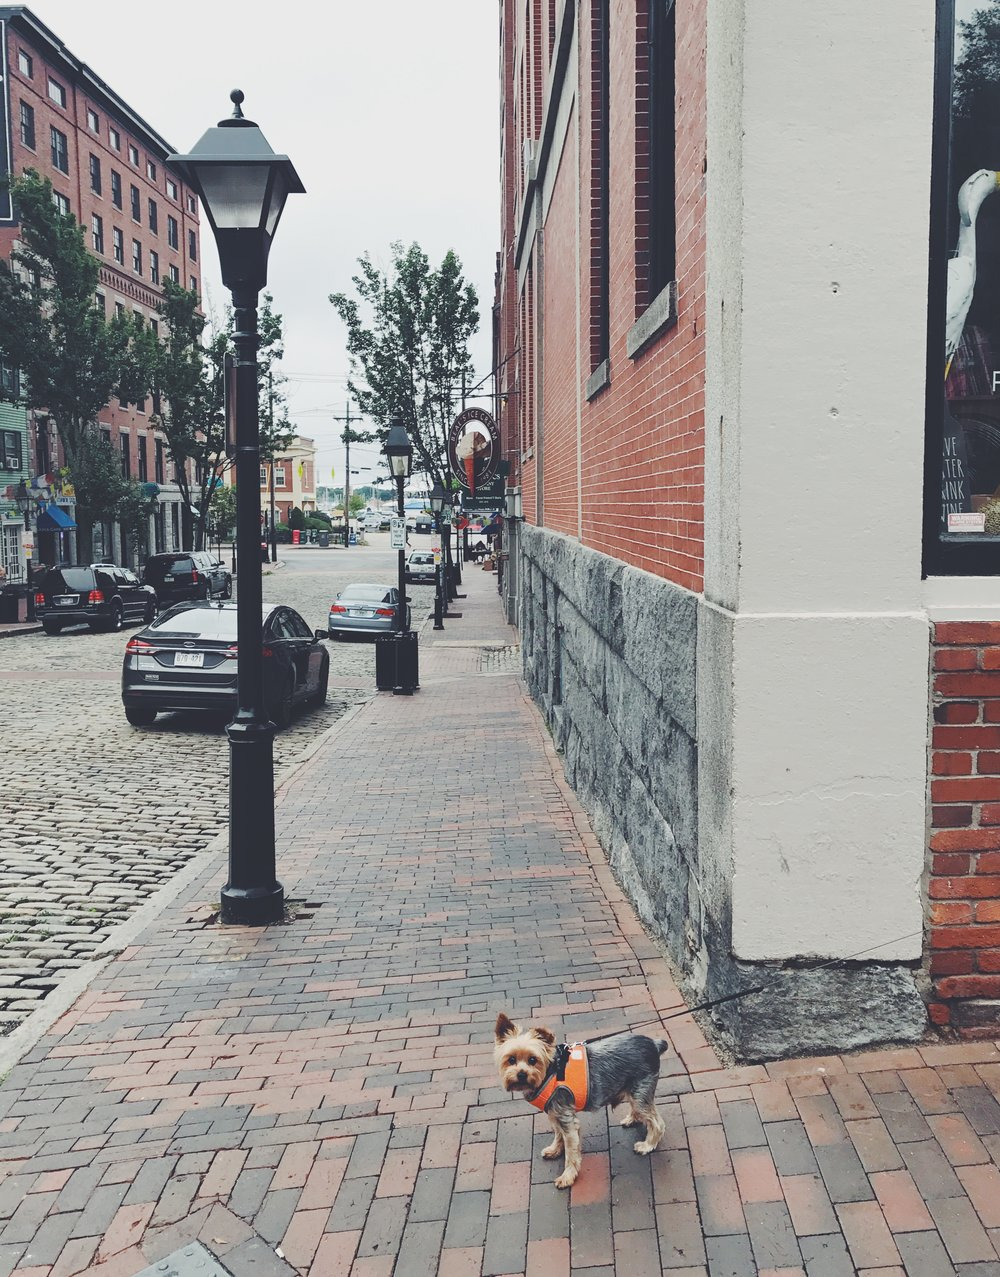 Stanley enjoying his big adventure in Portland, which is extremely dog-friendly!